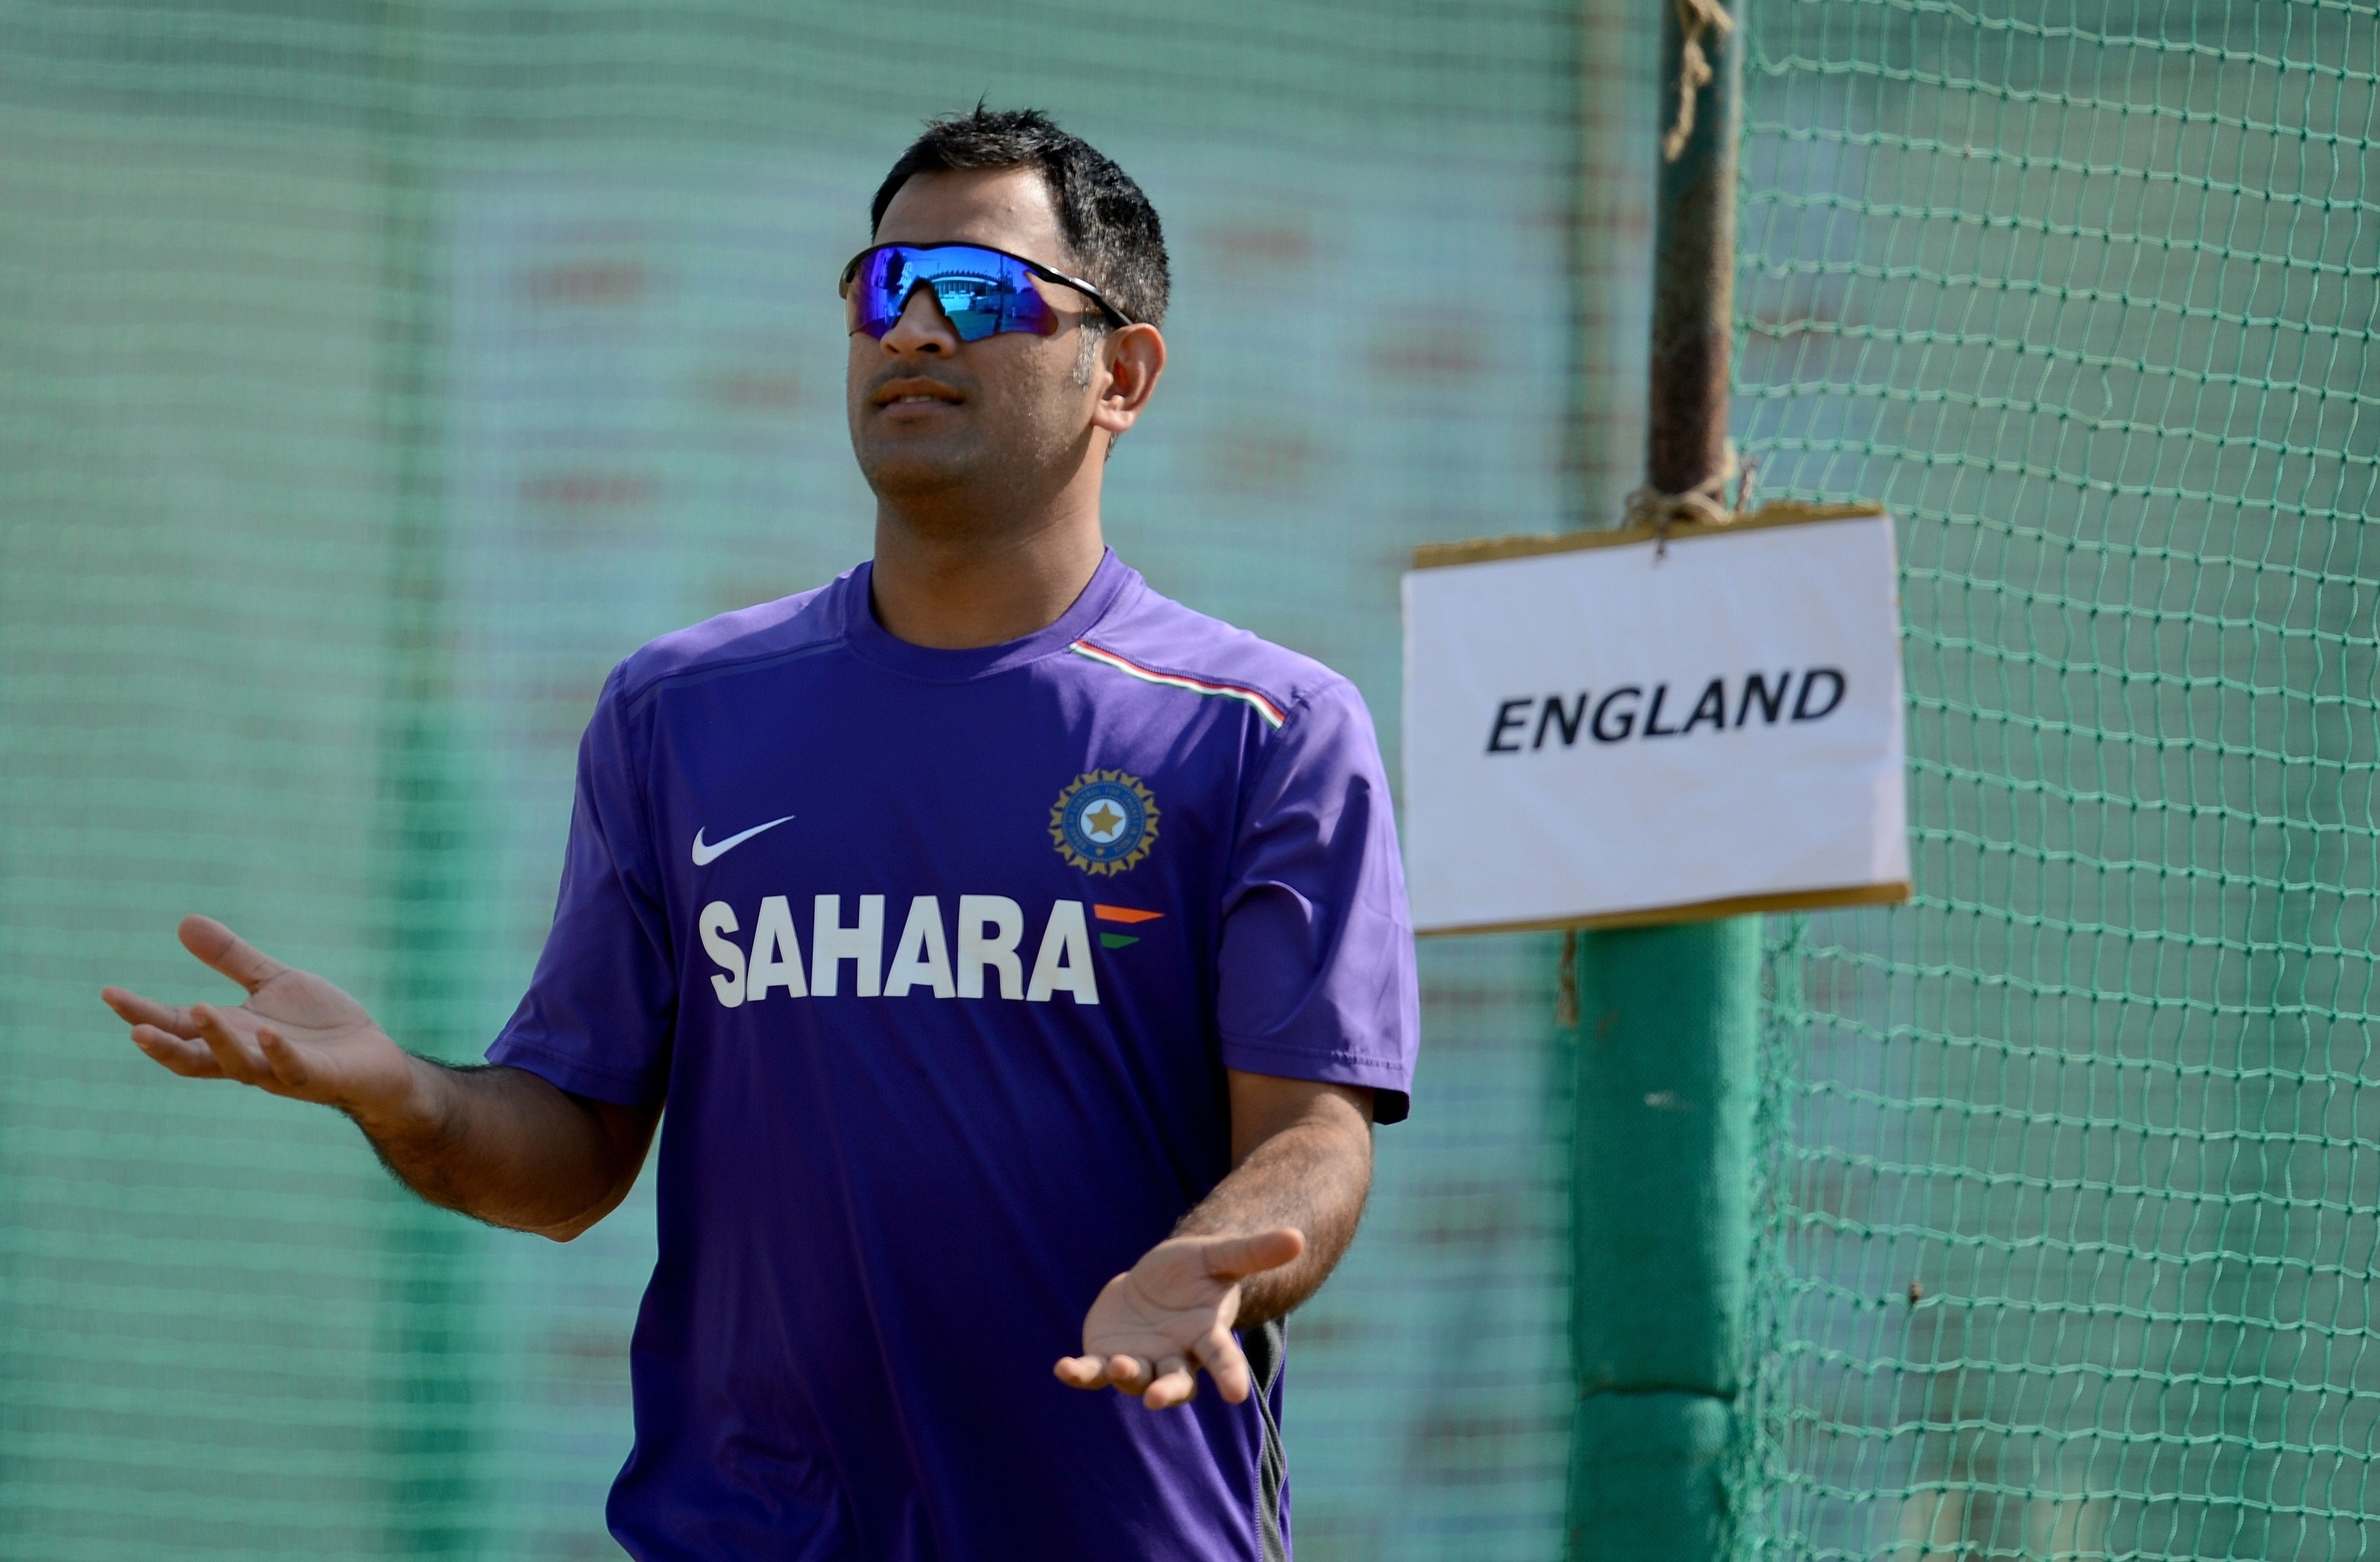 India captain MS Dohni is one of the names in the firing-line after his side's second Test defeat to England (Picture: AFP)